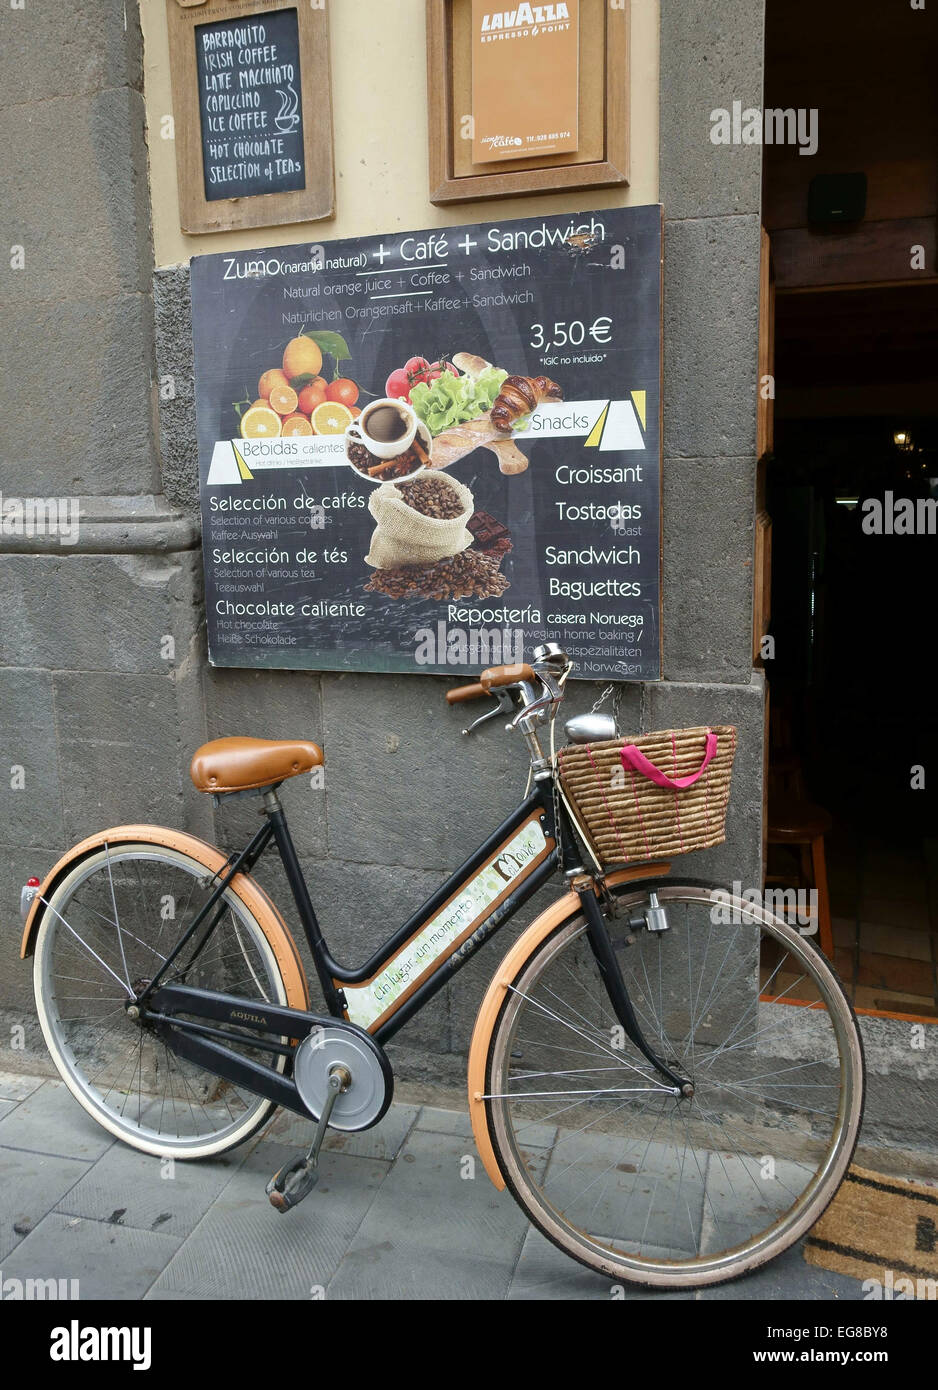 Old Bicycle Outside Restaurant Stock Photos & Old Bicycle Outside ...